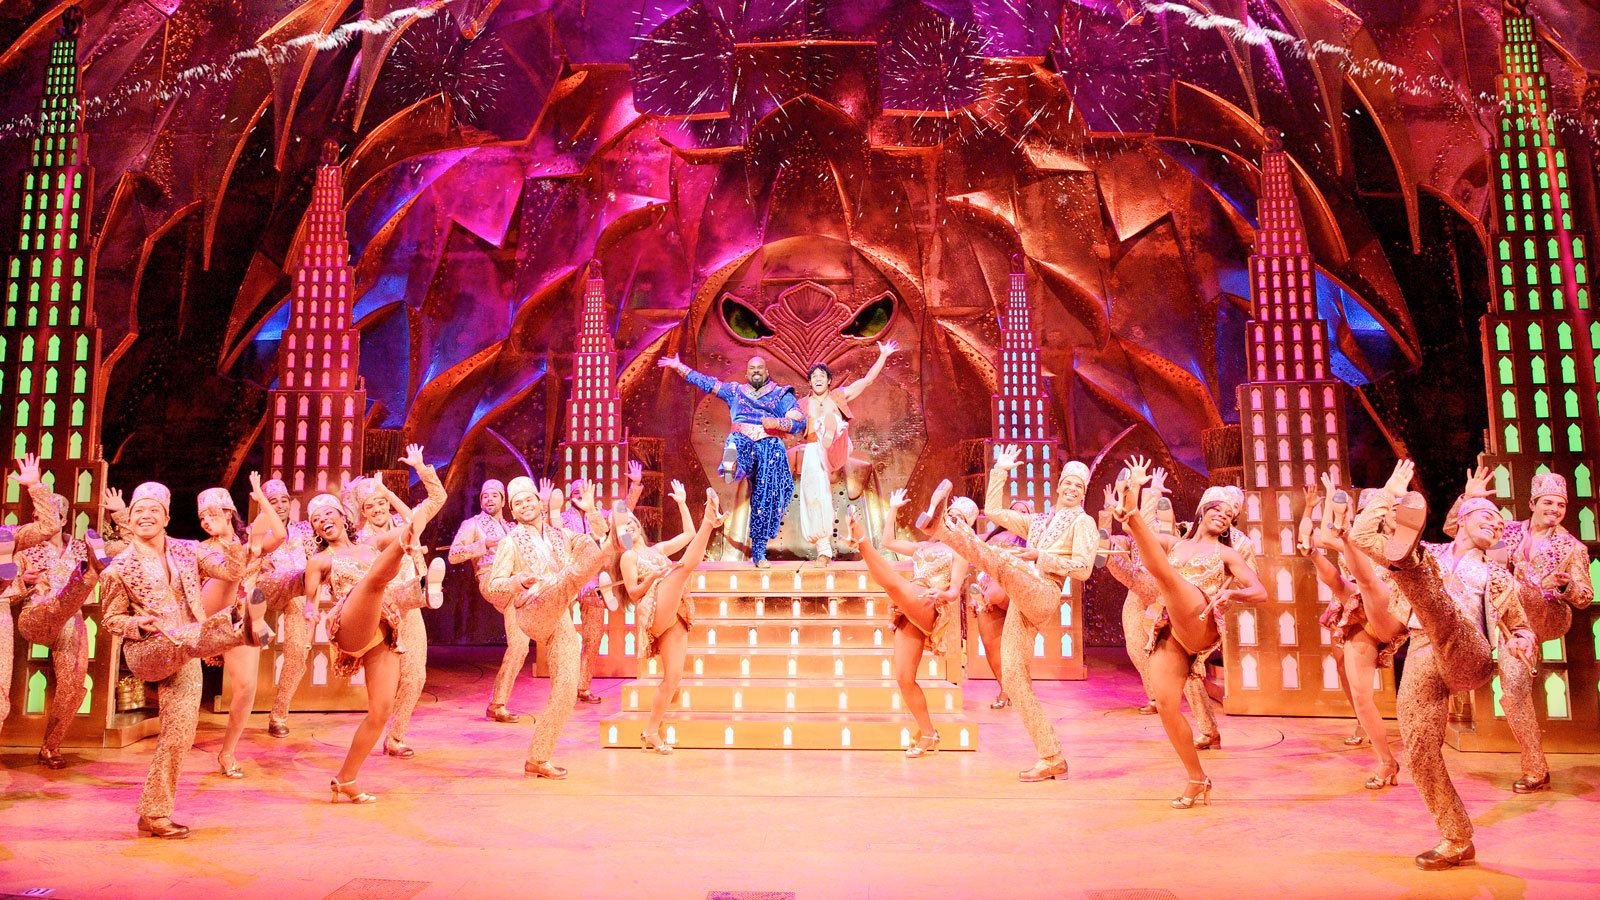 main performers R the center of dancers on stage in London